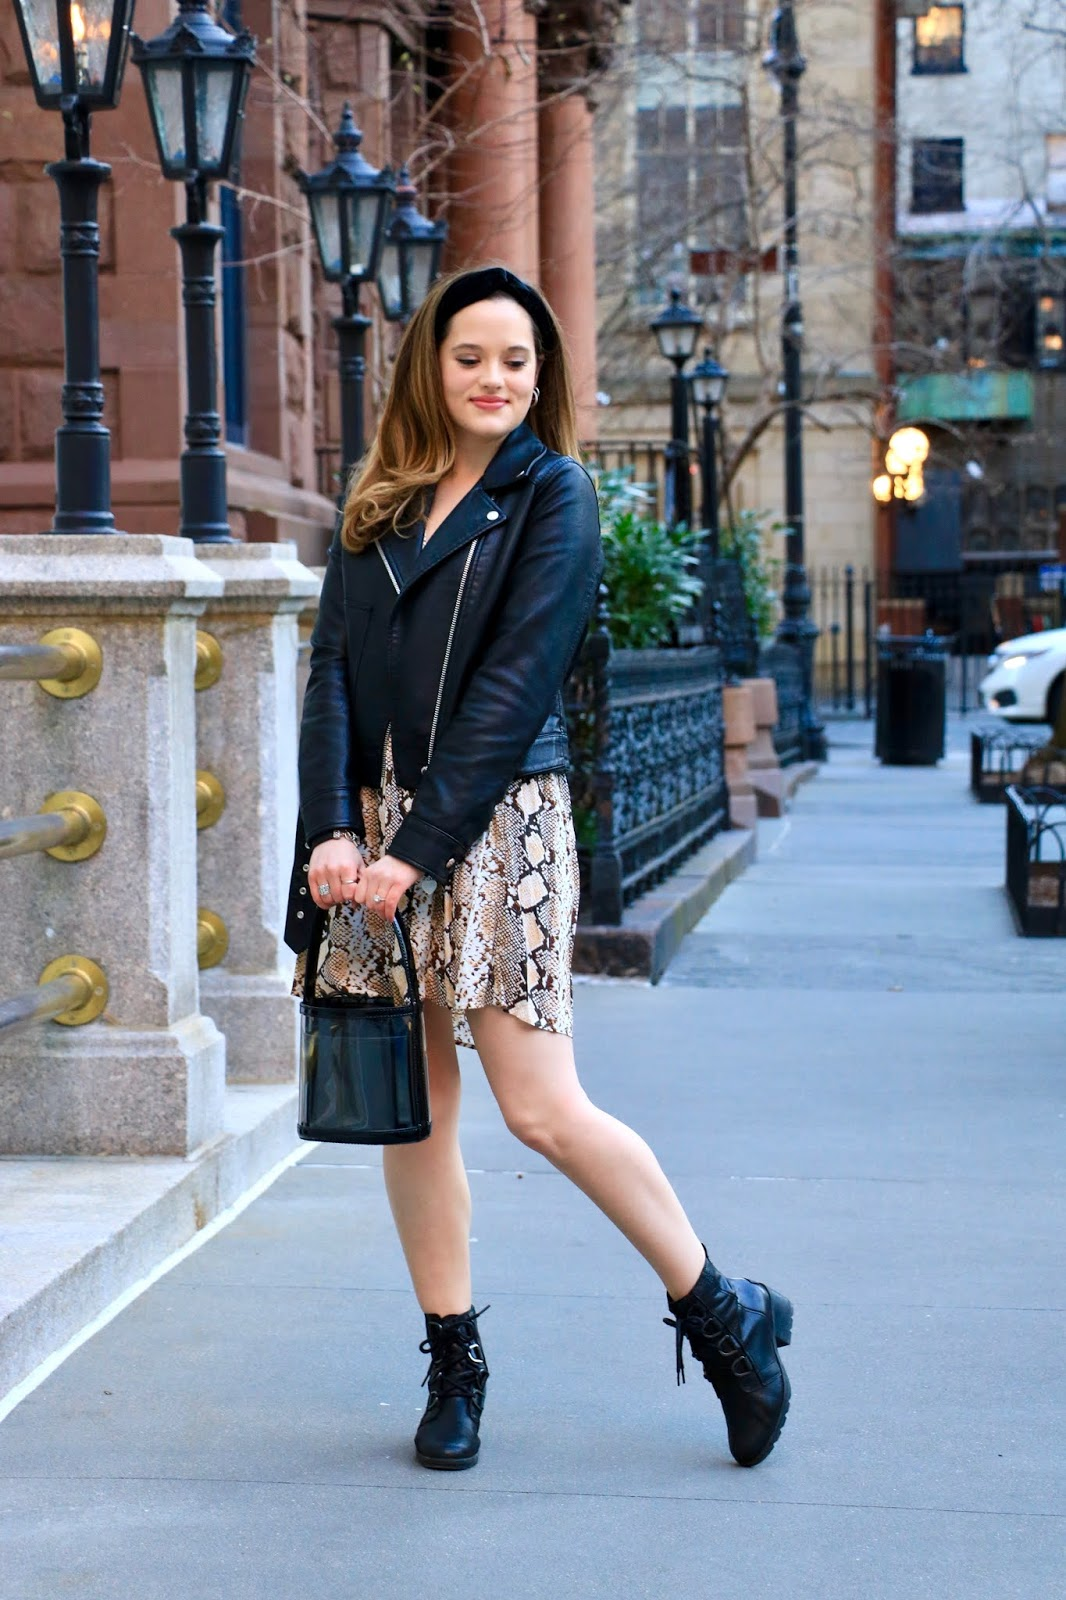 Nyc fashion blogger Kathleen Harper wearing a dress outfit with combat boots.